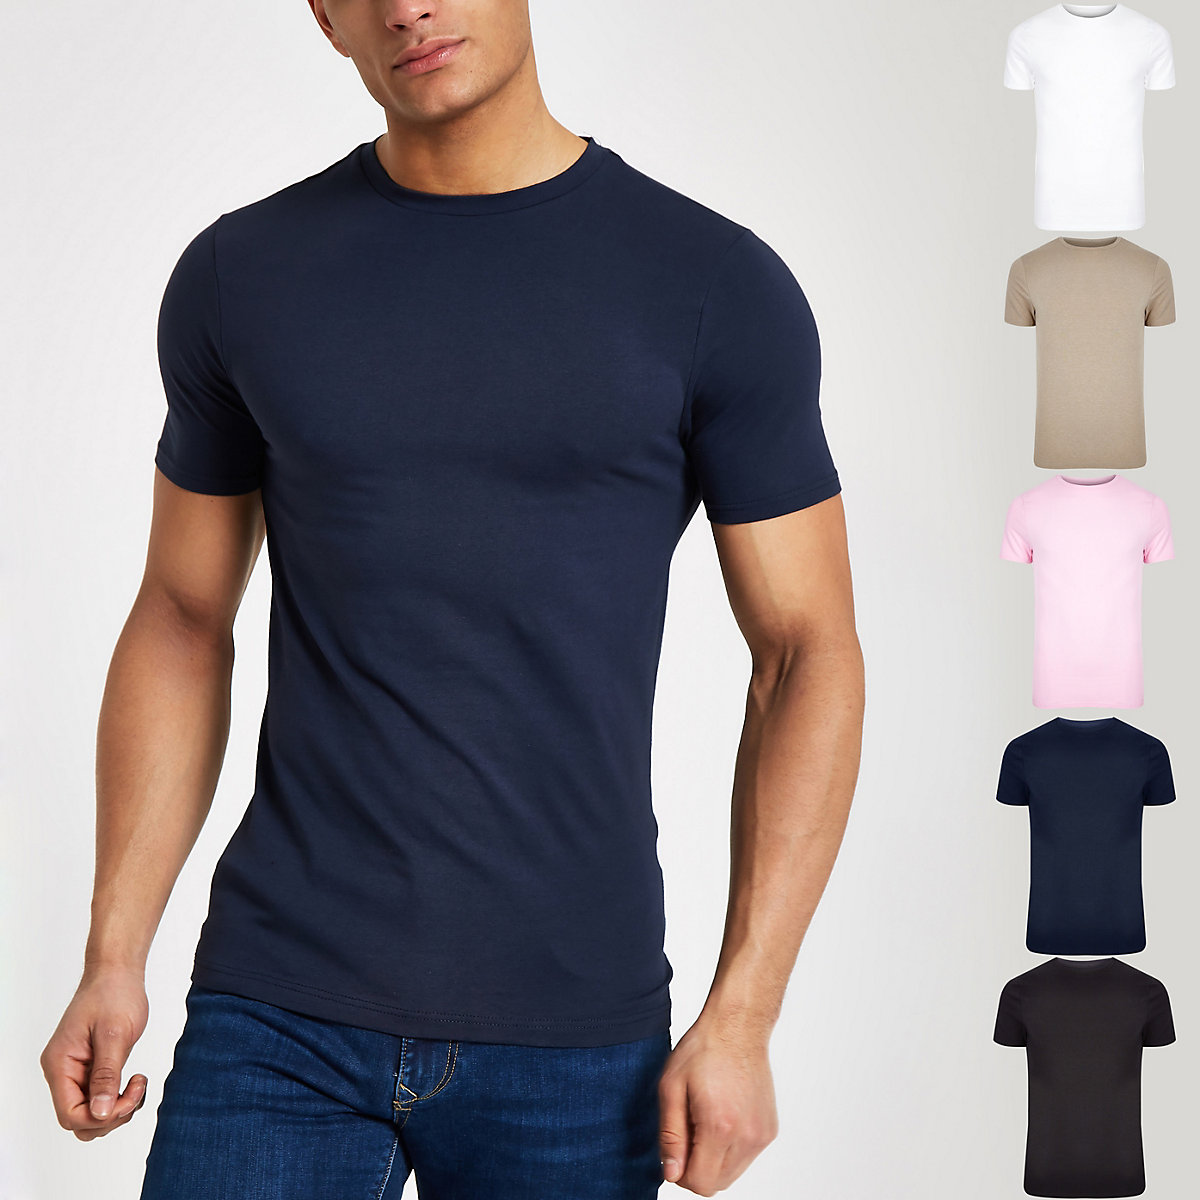 Multicolored muscle fit T-shirt 5 pack